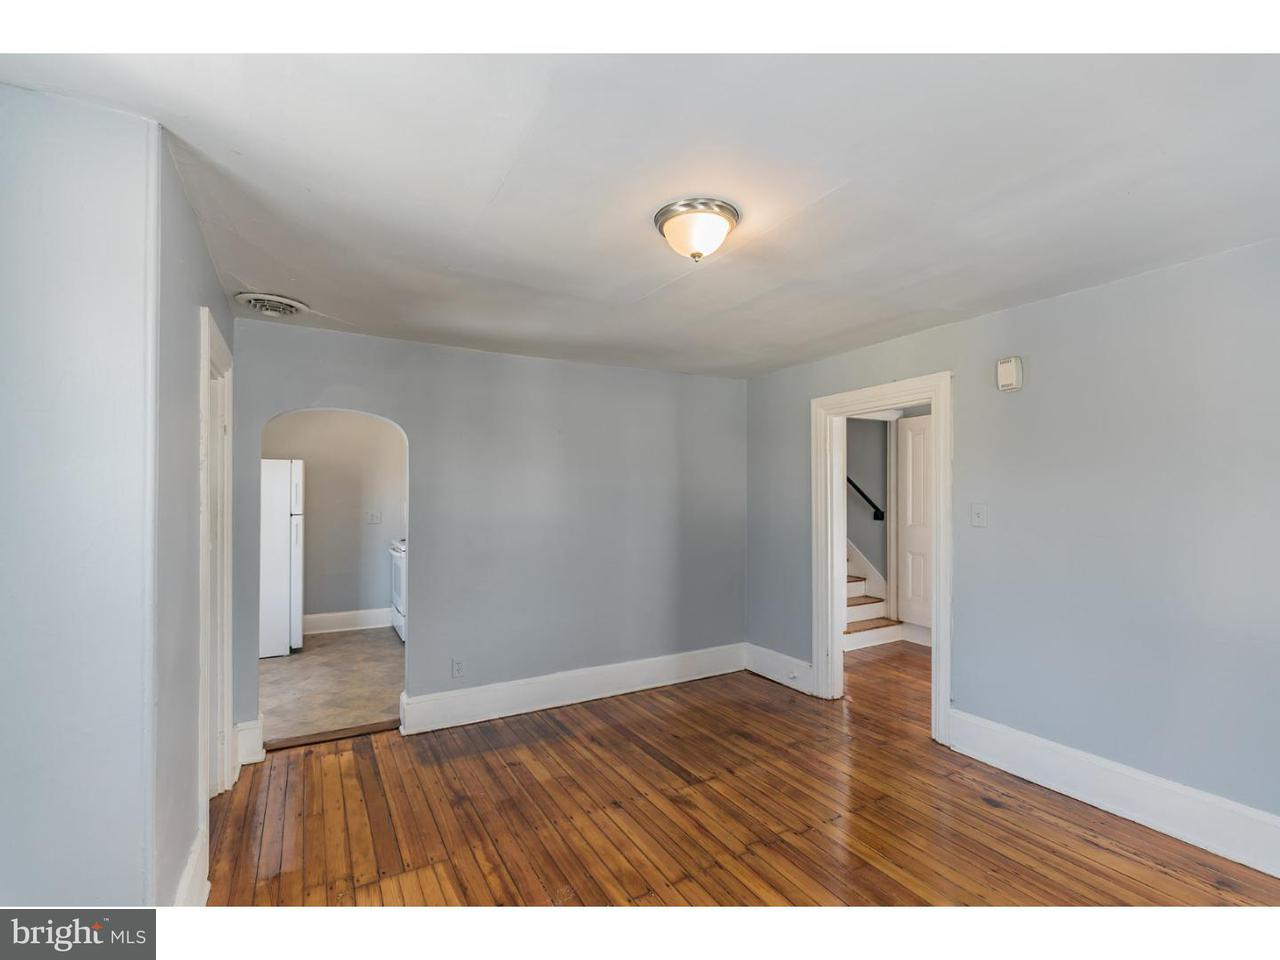 Single Family Home for Rent at 19 S MAIN ST #A-UP Mullica Hill, New Jersey 08062 United States